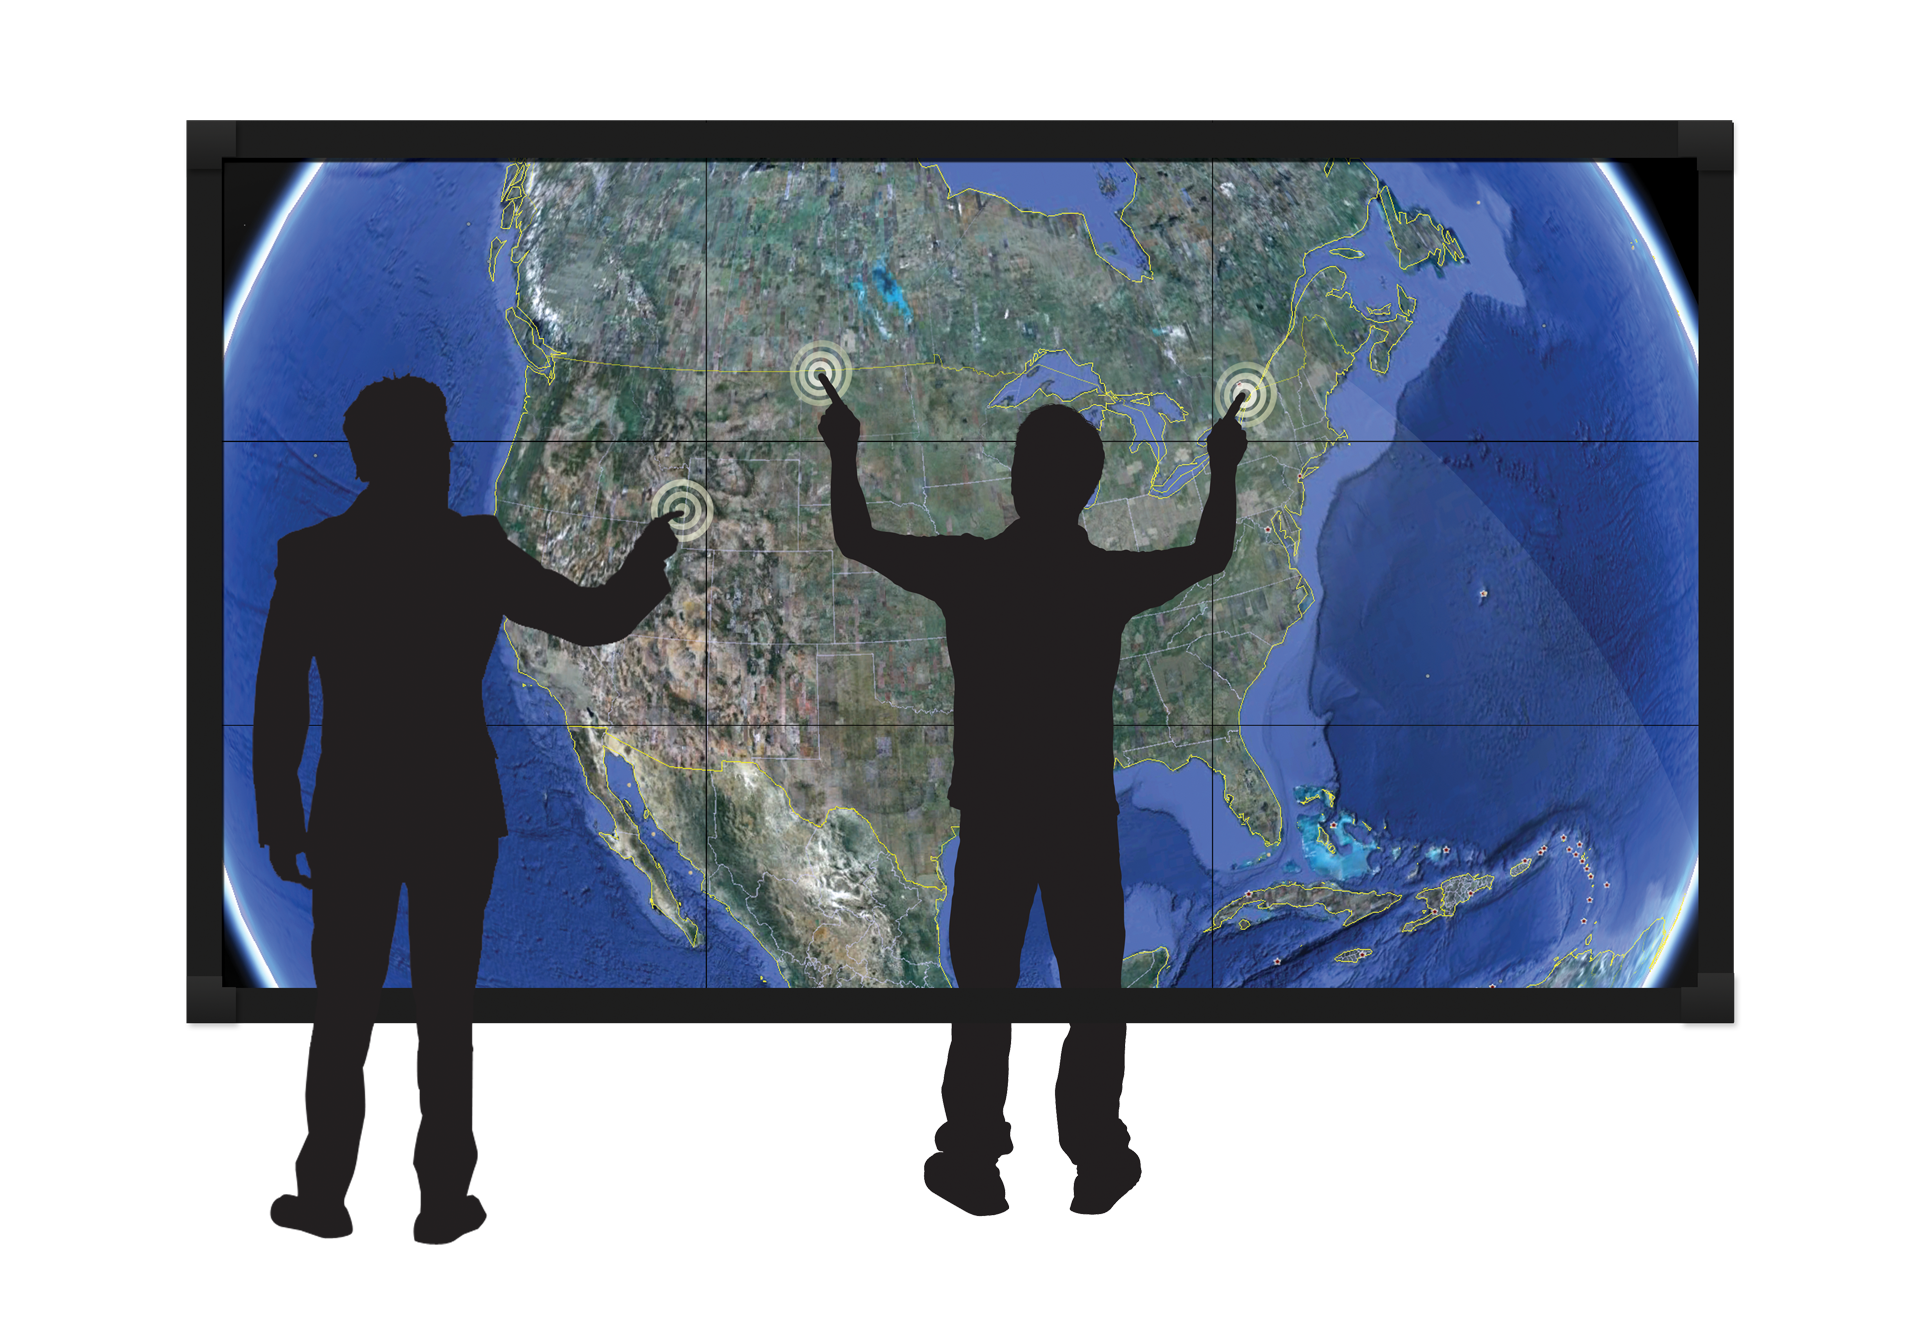 Clarity Matrix Multitouch Interactive Lcd Video Wall Planar